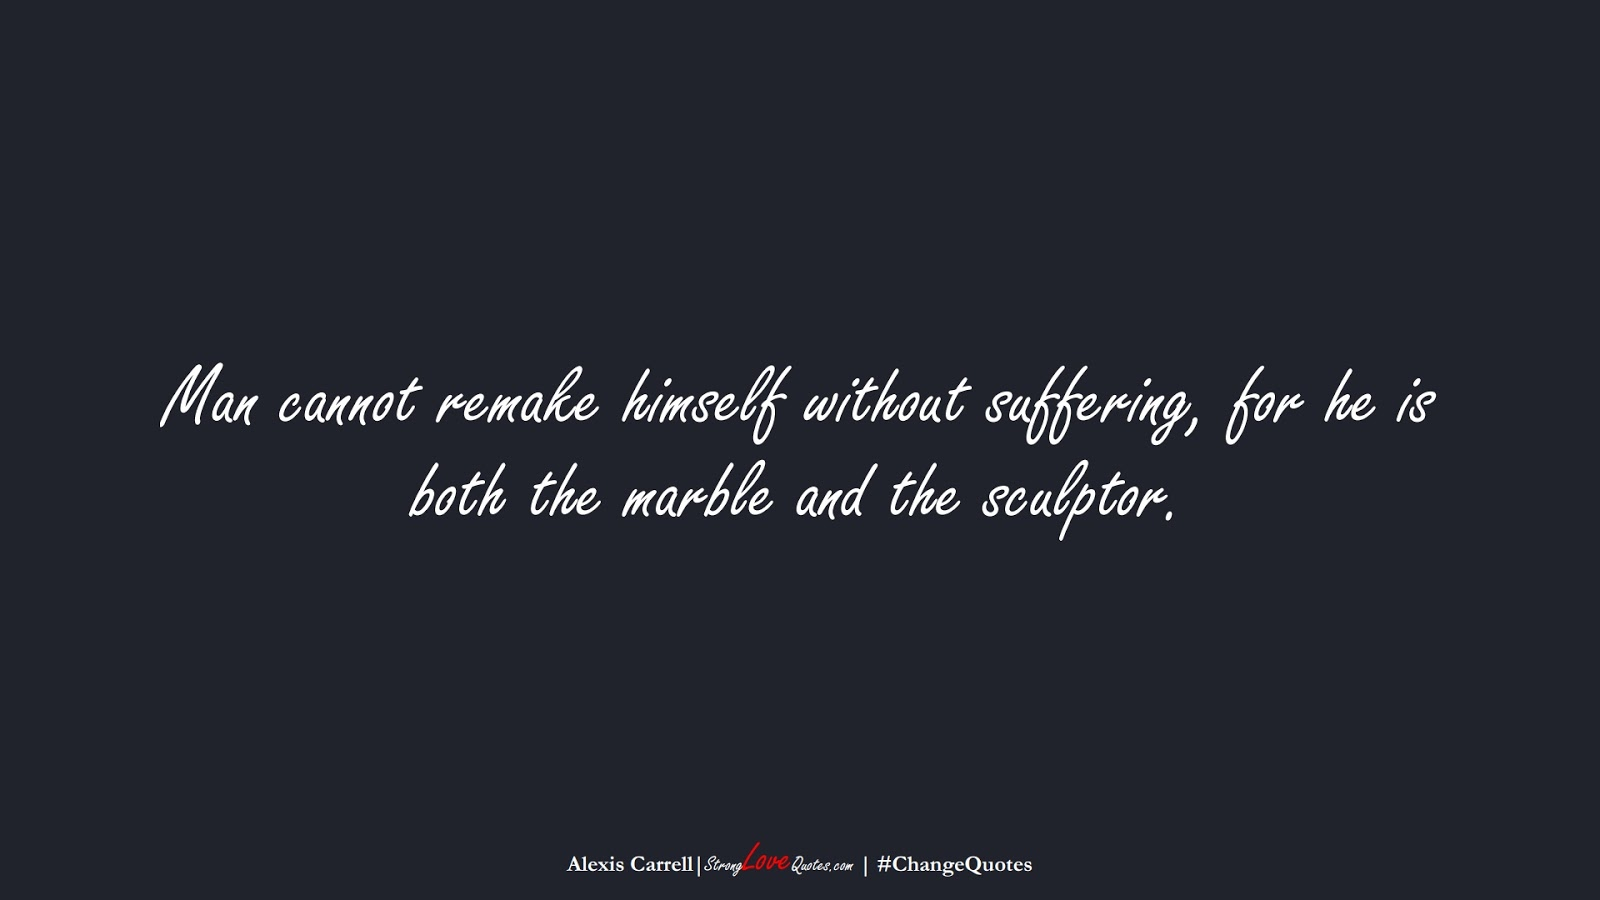 Man cannot remake himself without suffering, for he is both the marble and the sculptor. (Alexis Carrell);  #ChangeQuotes